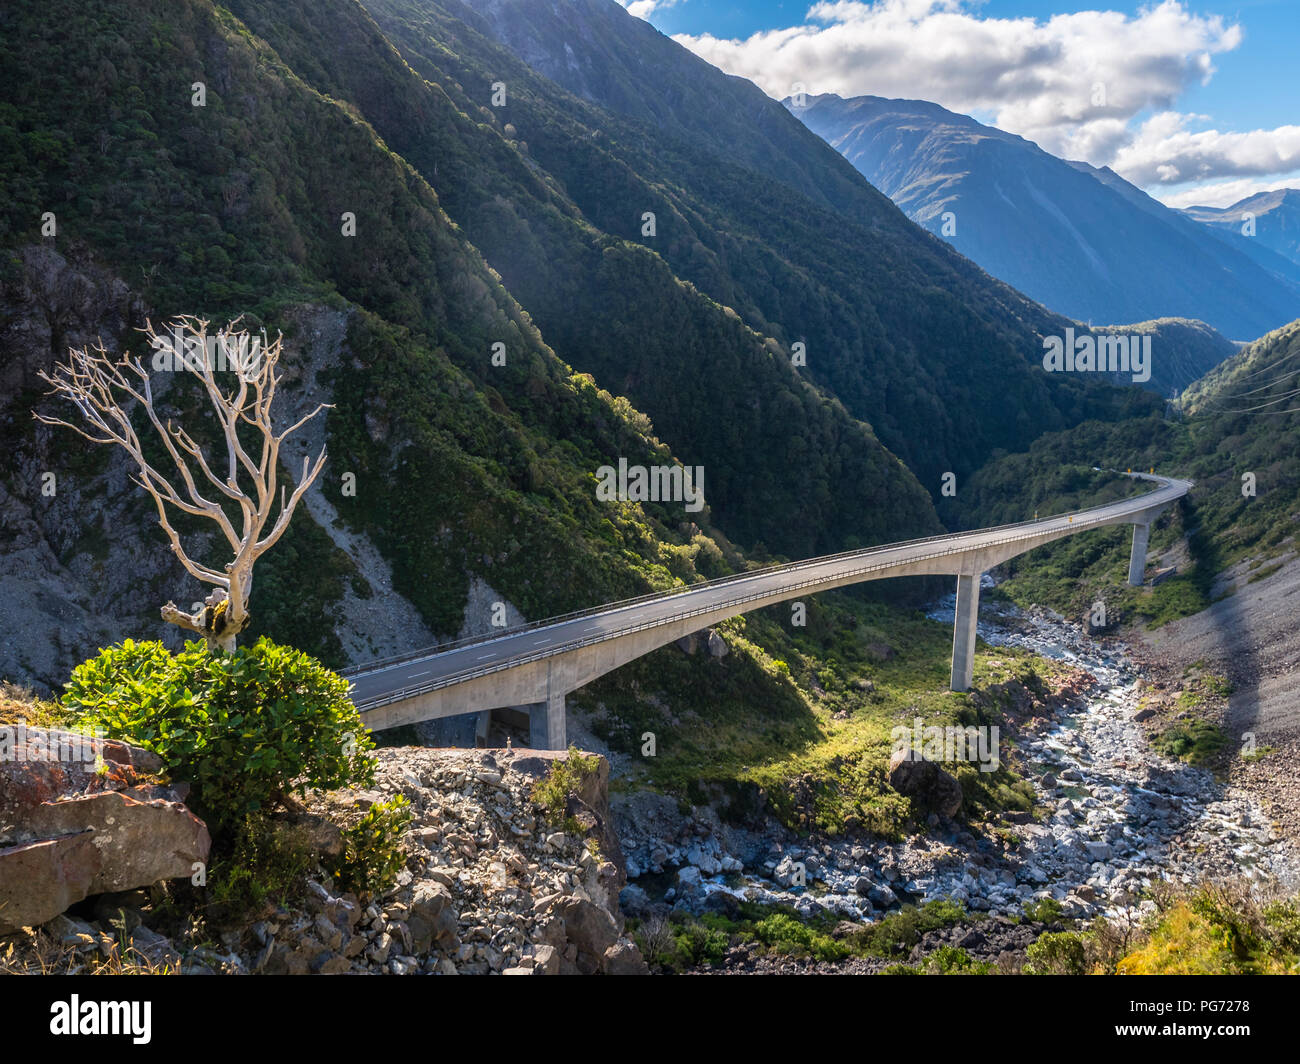 New Zealand, South Island, Canterbury Region, Arthur's Pass National Park, bridge at Arthur's Pass - Stock Image